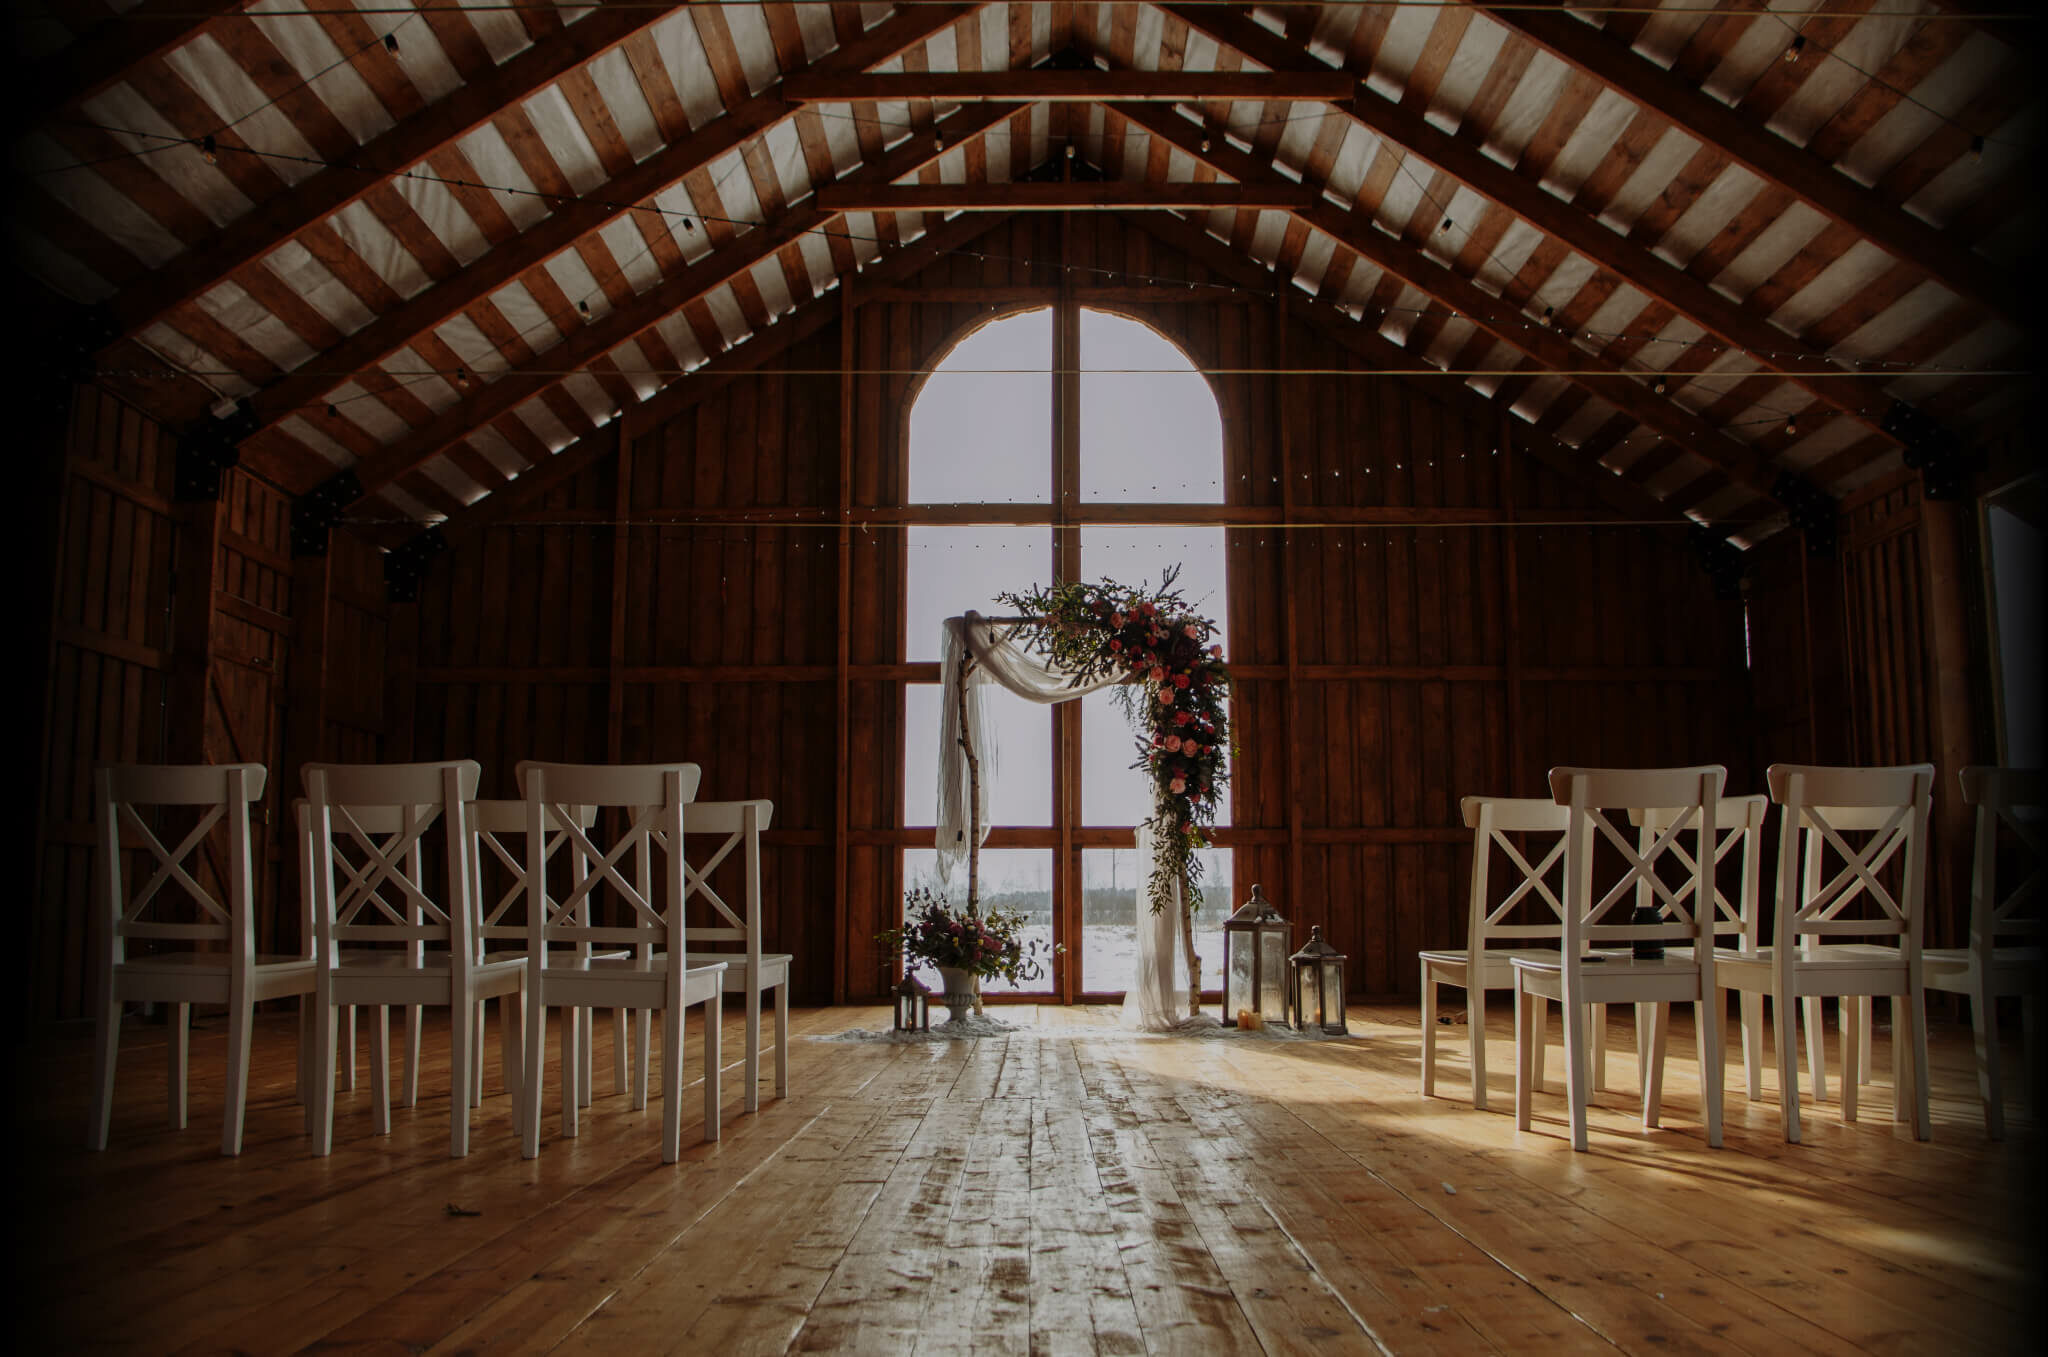 Best Rustic & Barn wedding venues in Texas